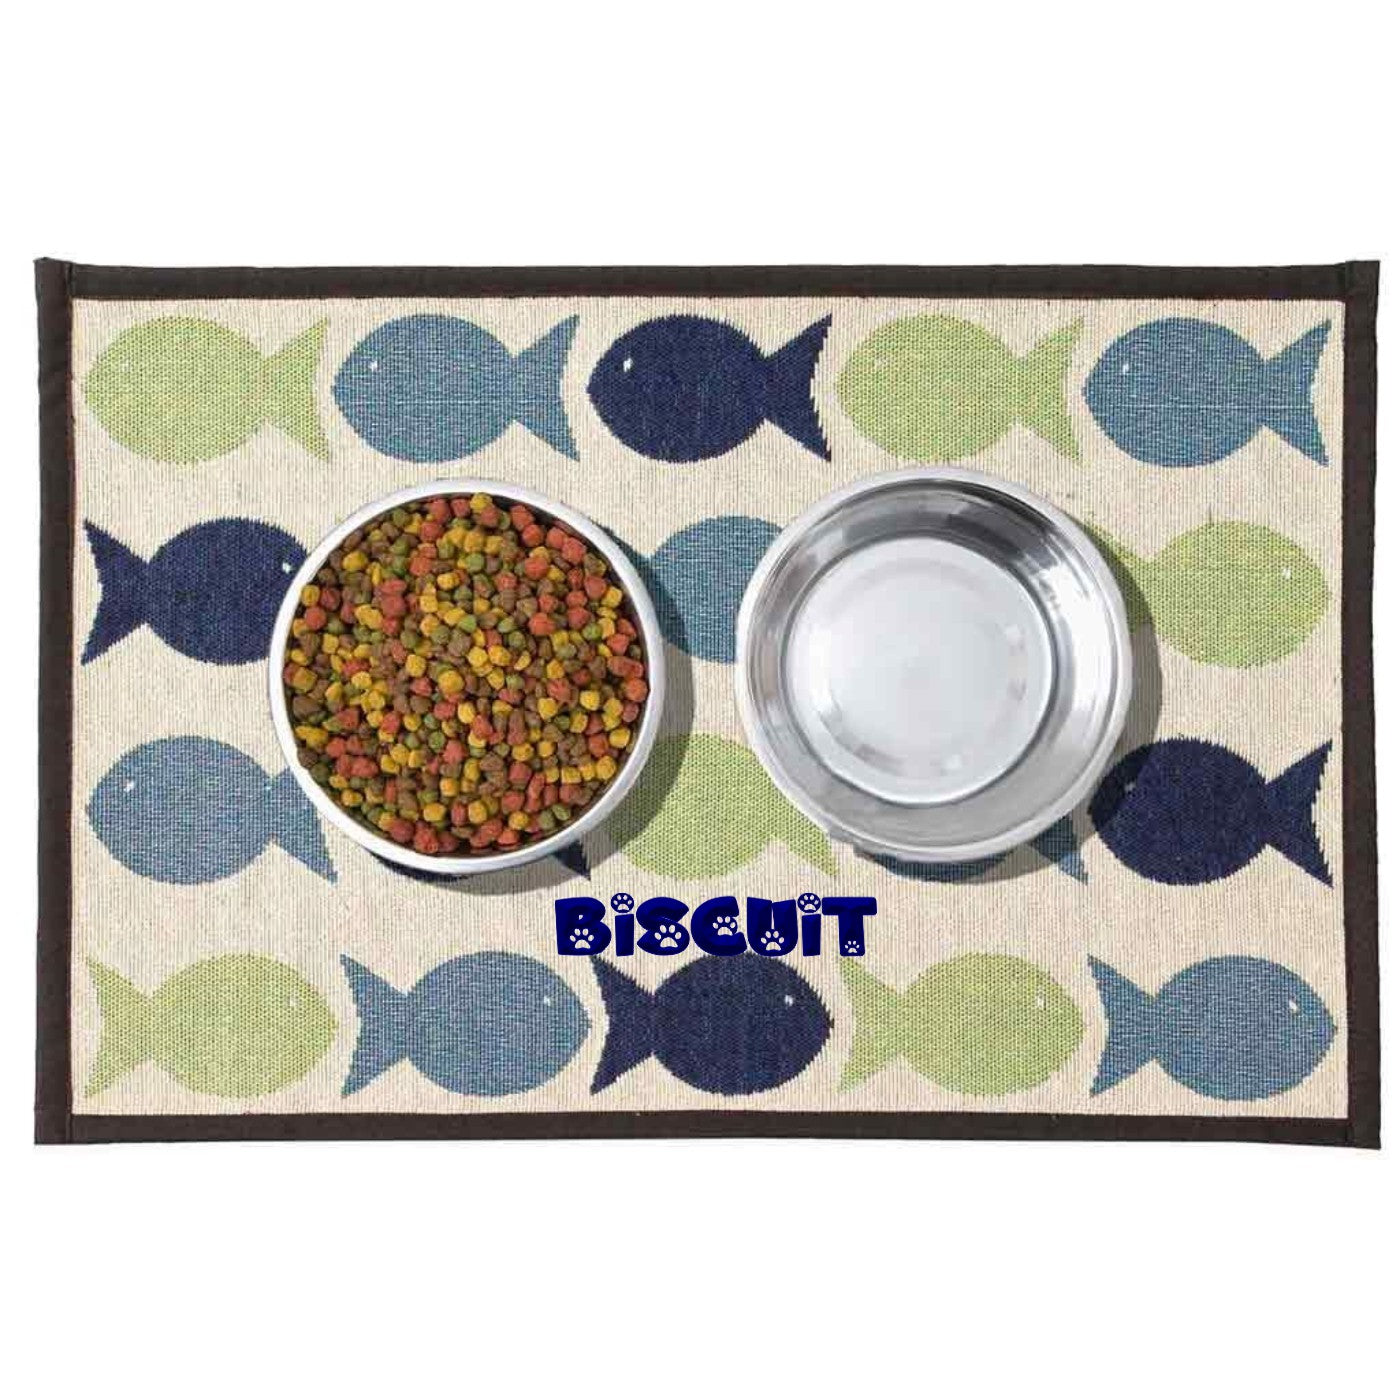 Dibsies Personalized Tapestry Cat Food Mat - Kool Fishies